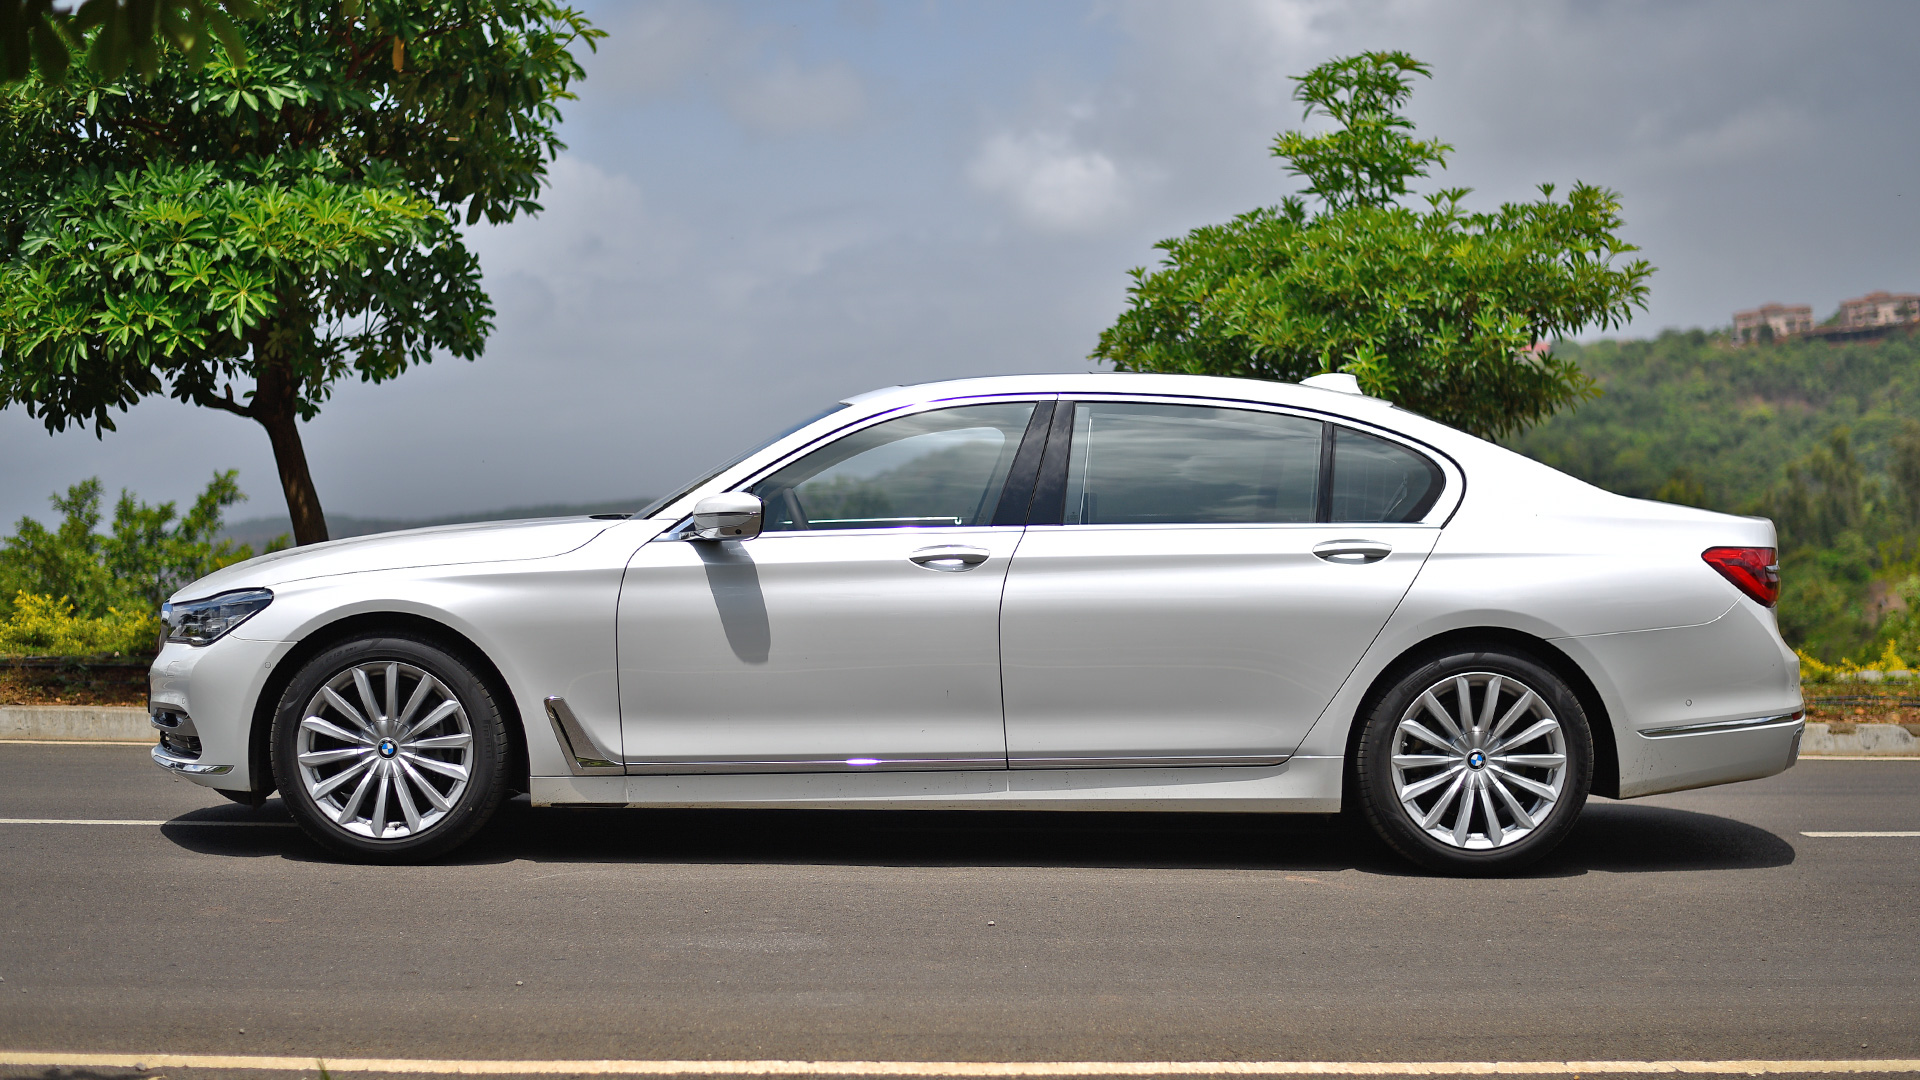 bmw 7 series 2017 price mileage reviews specification. Black Bedroom Furniture Sets. Home Design Ideas